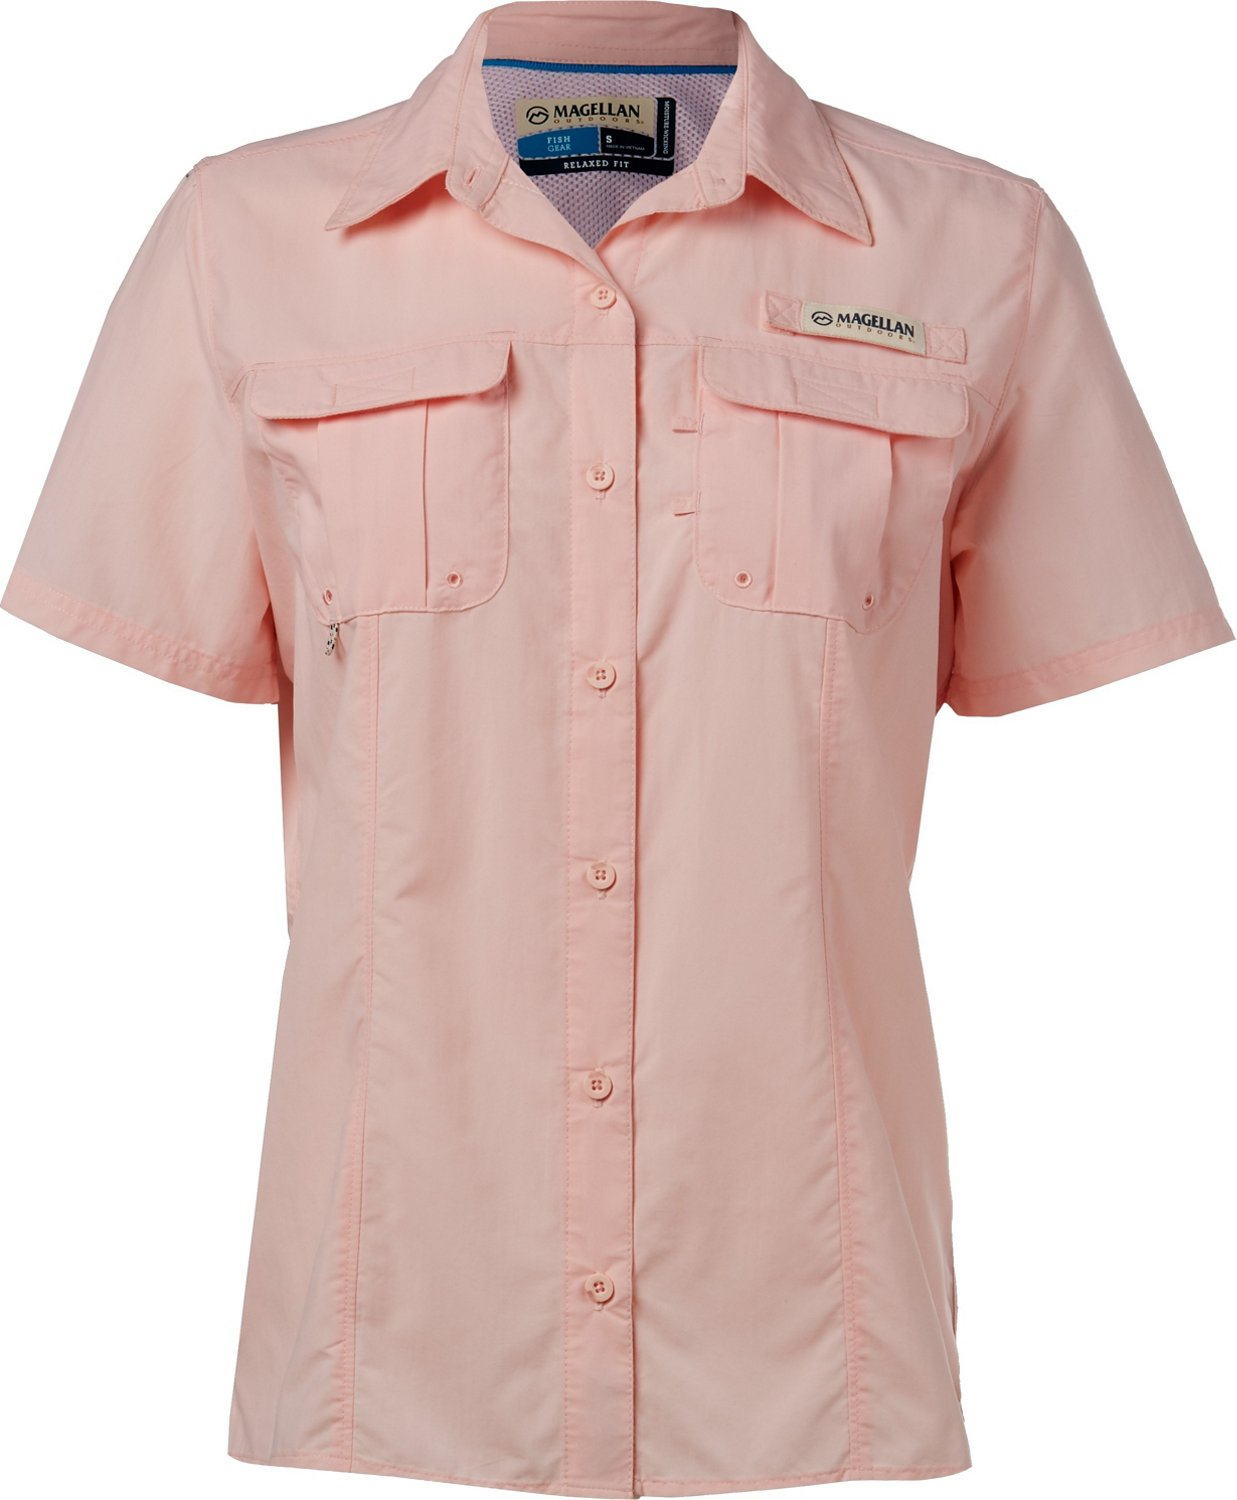 be73014e6 Display product reviews for Magellan Outdoors Women's Laguna Madre Fishing  Shirt